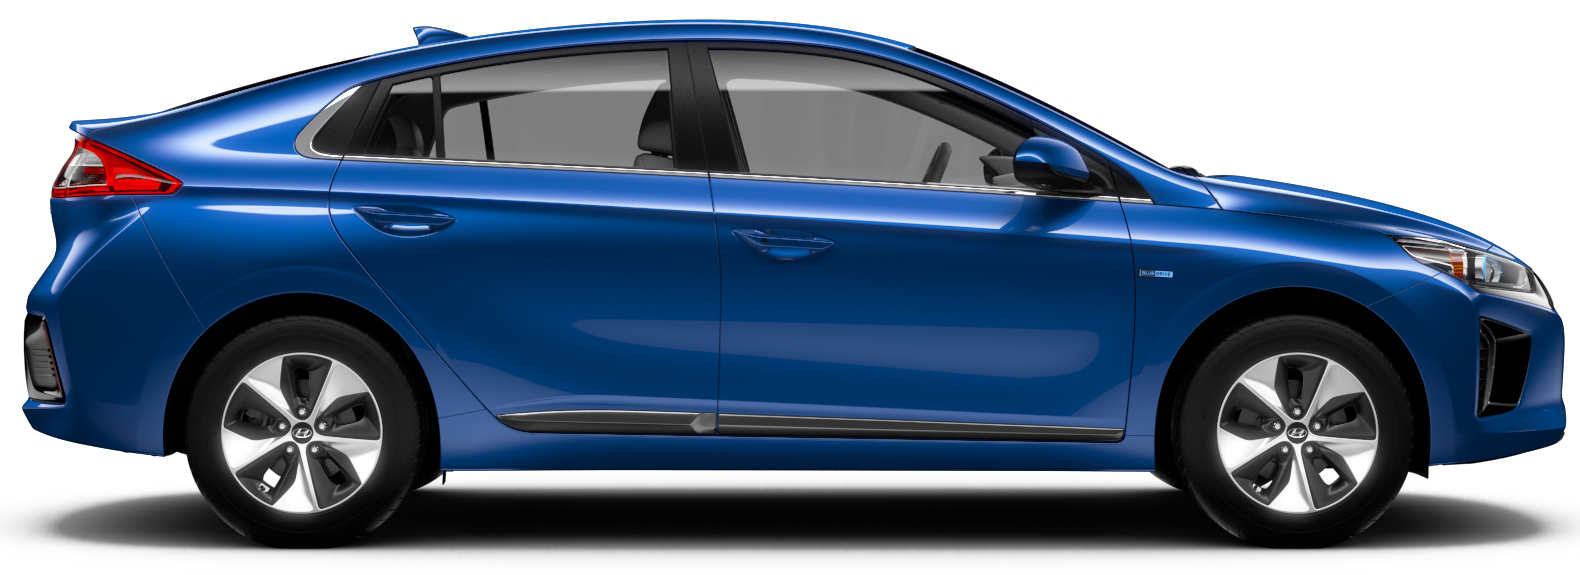 2018 Hyundai Ioniq EV Hatchback Electric